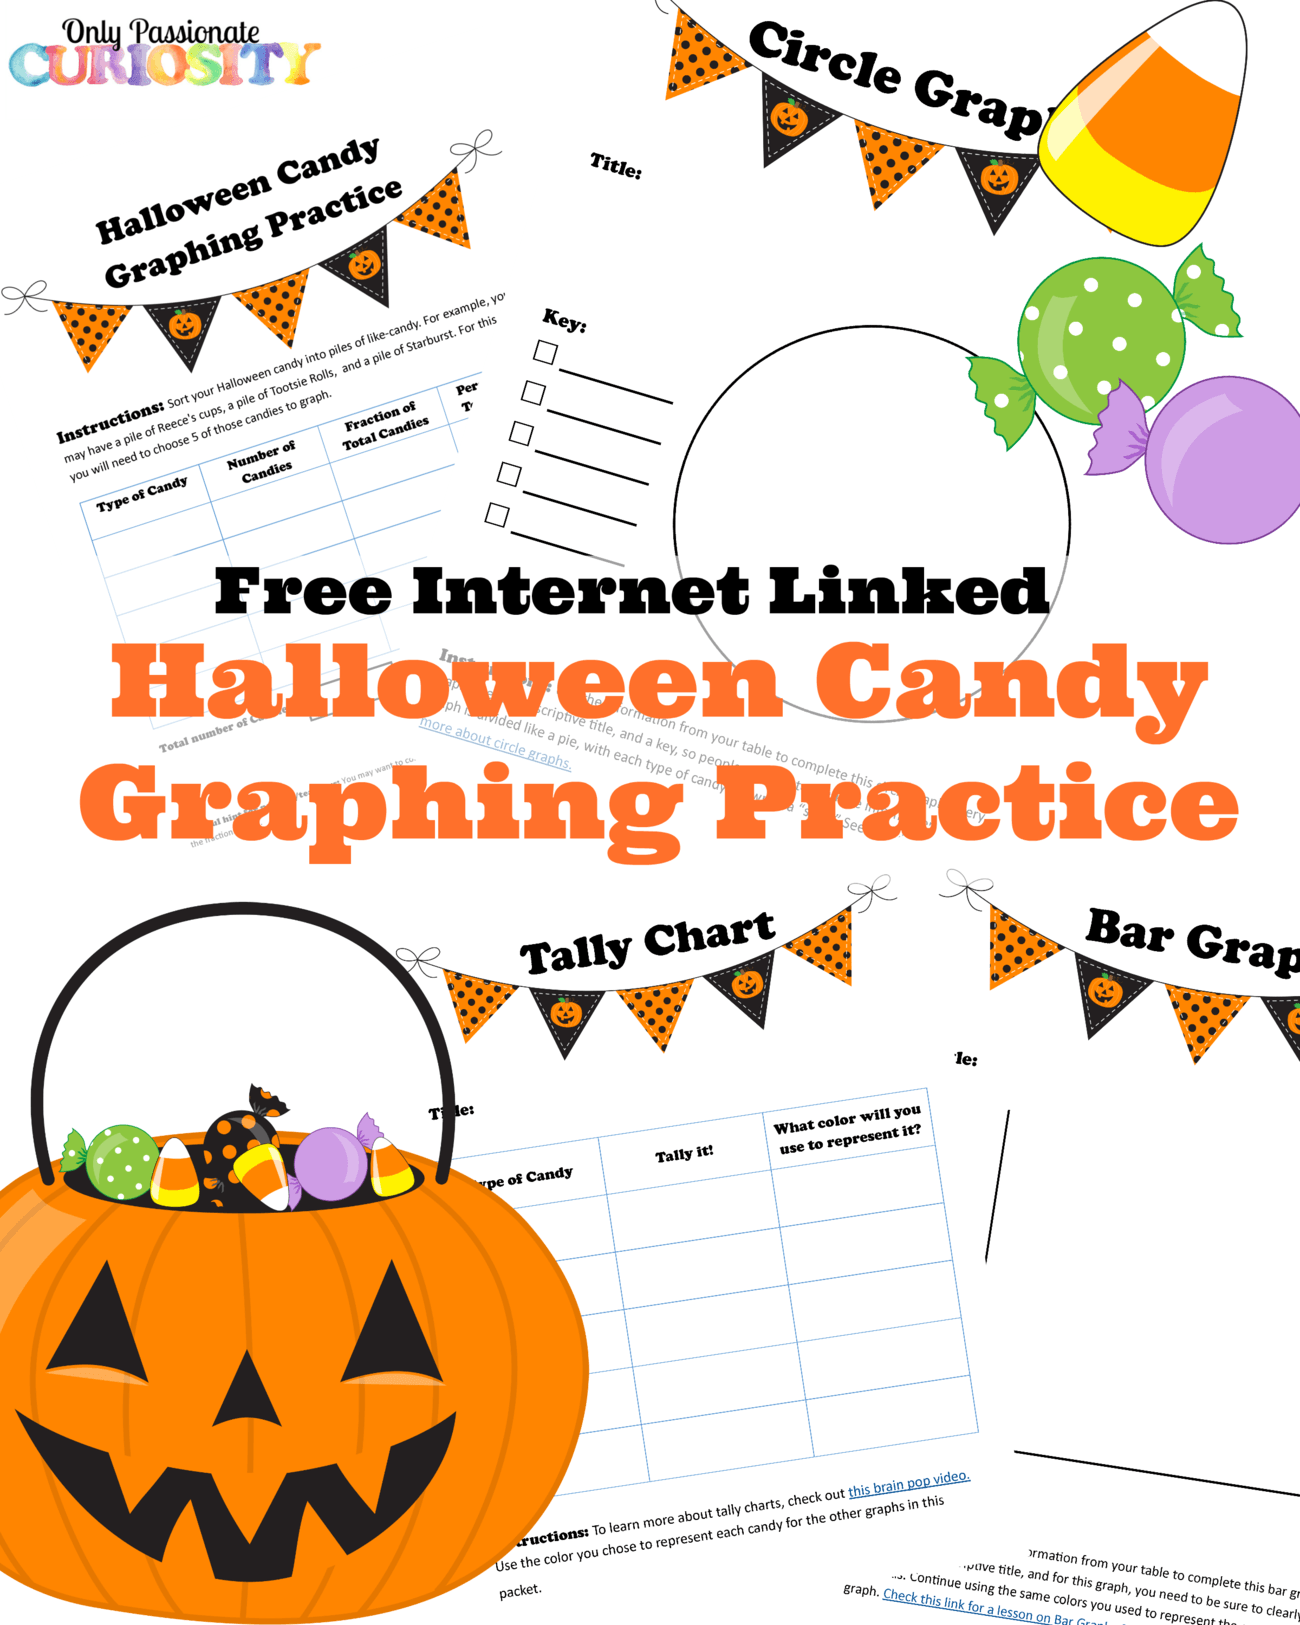 Halloween Candy Graphing Practice Free Printable